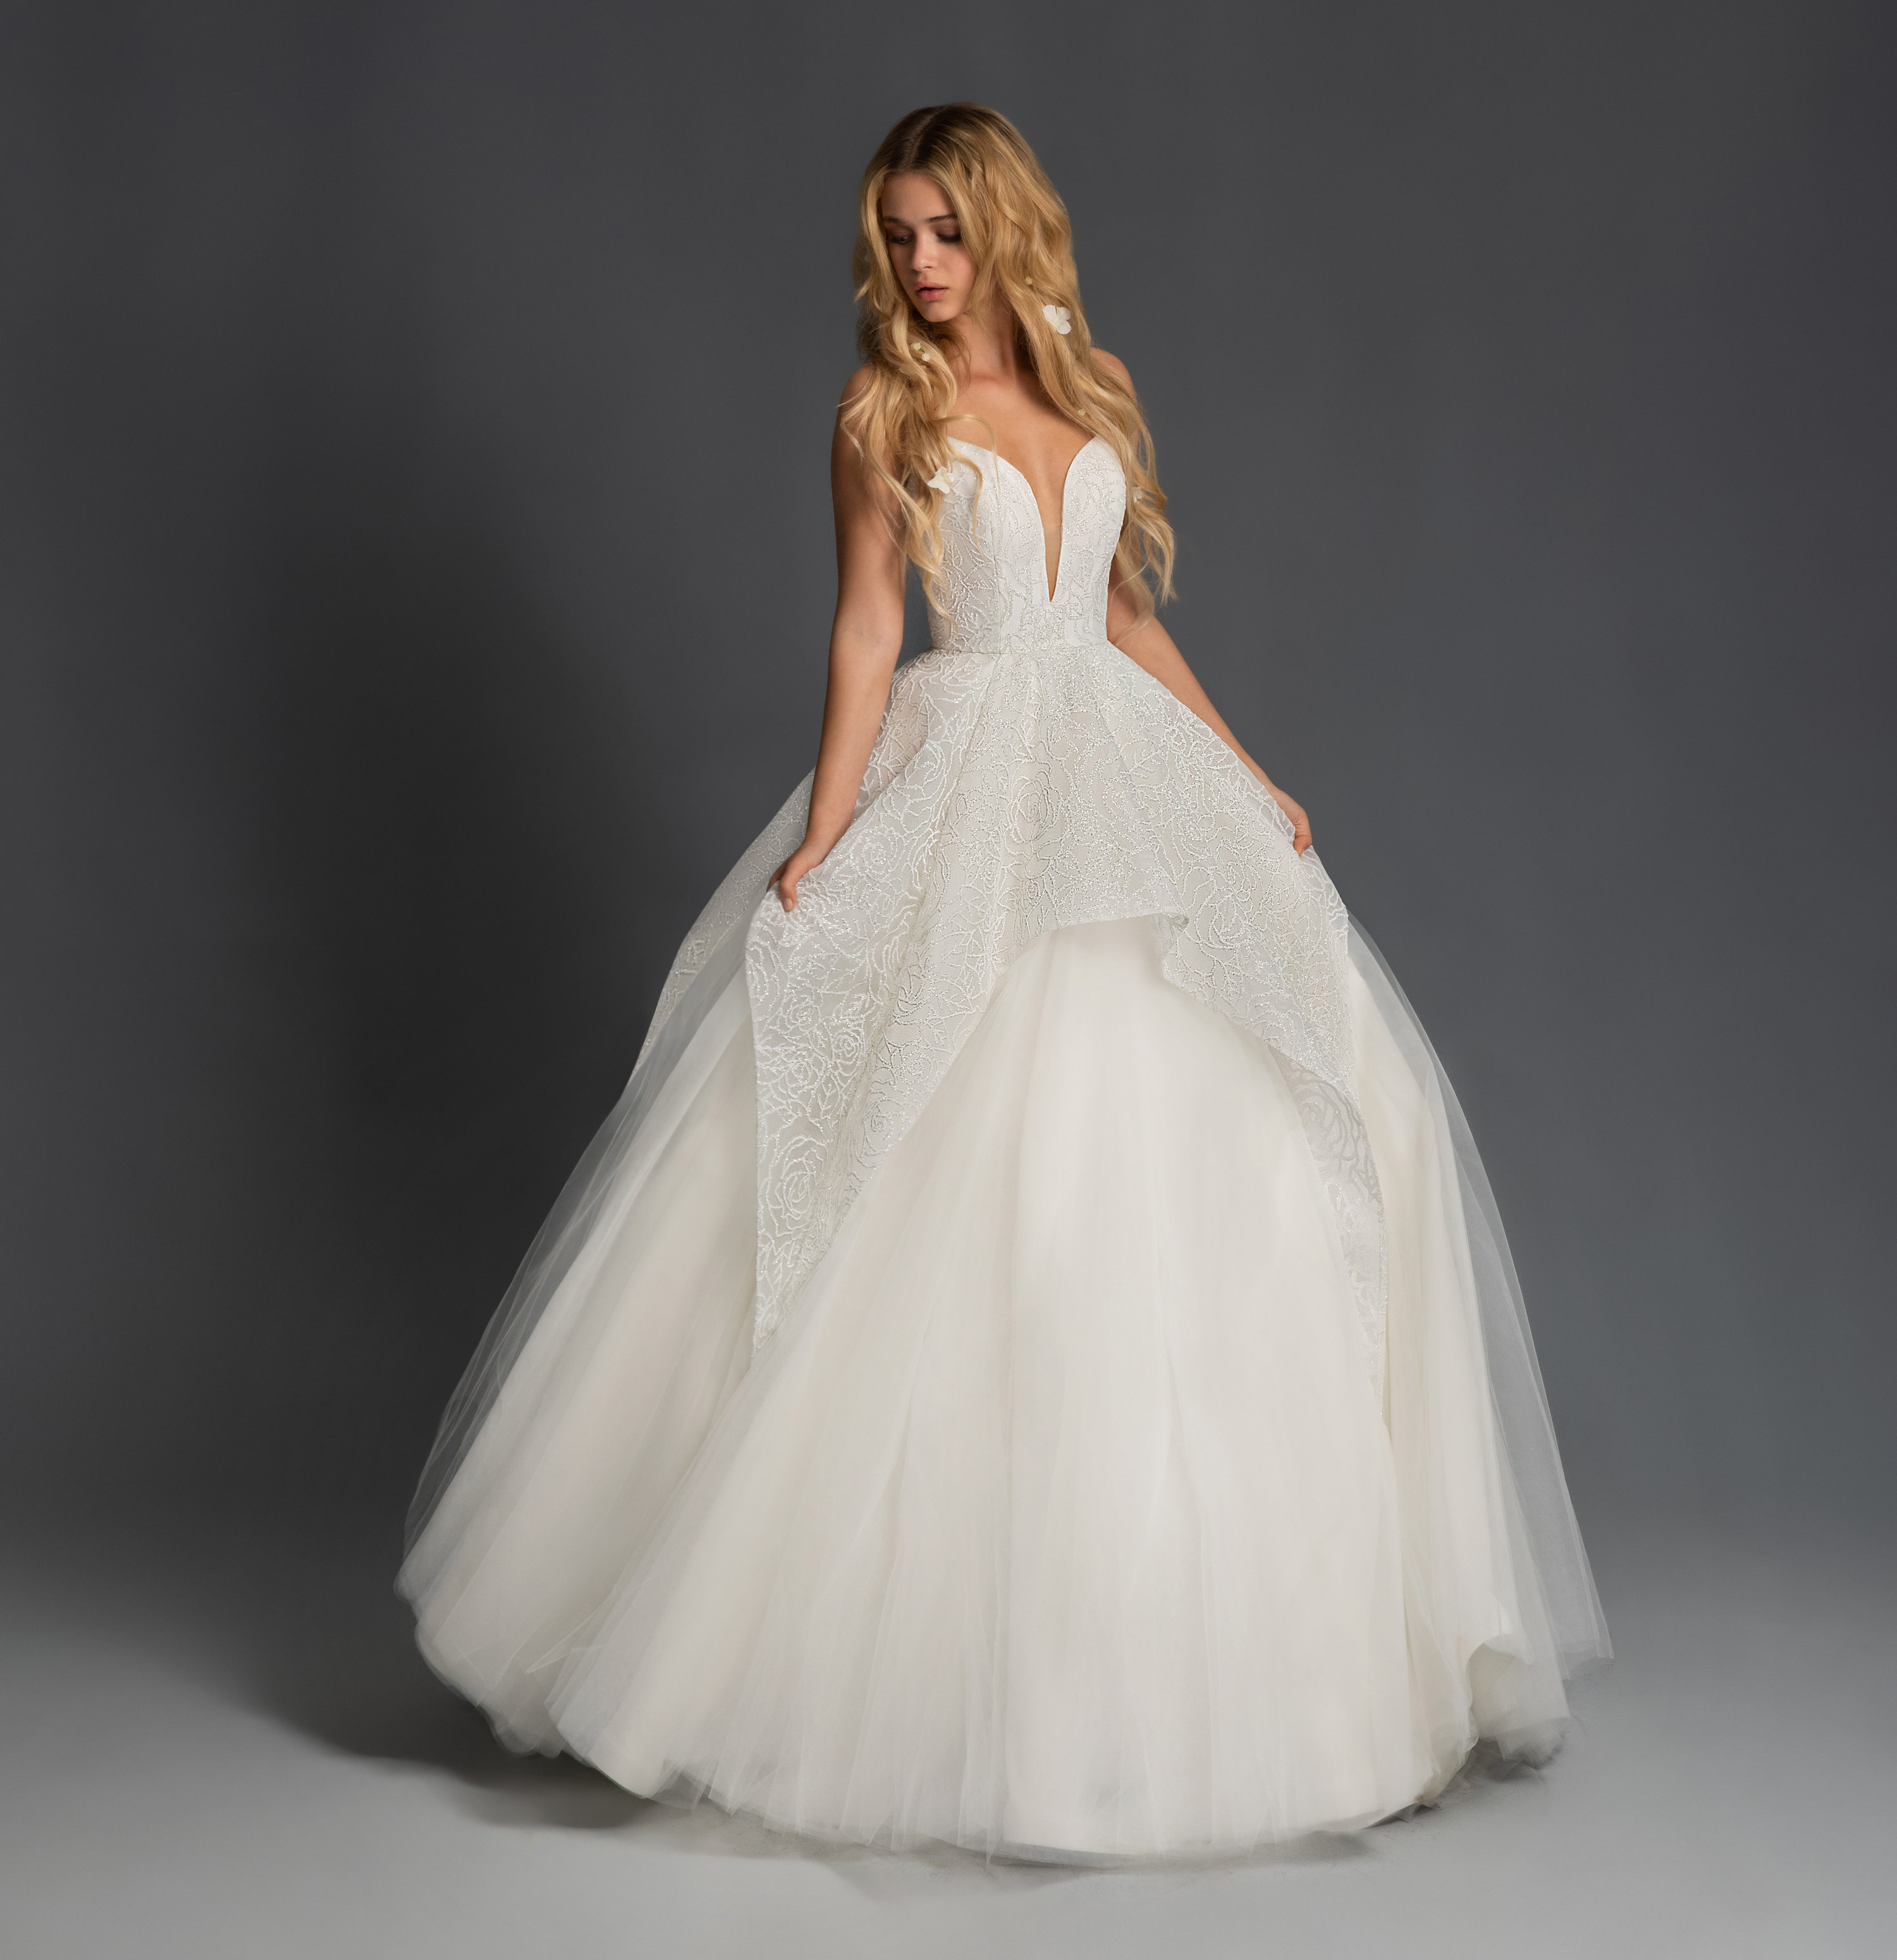 Spaghetti Strap Tiered Tulle Ball Gown Wedding Dress